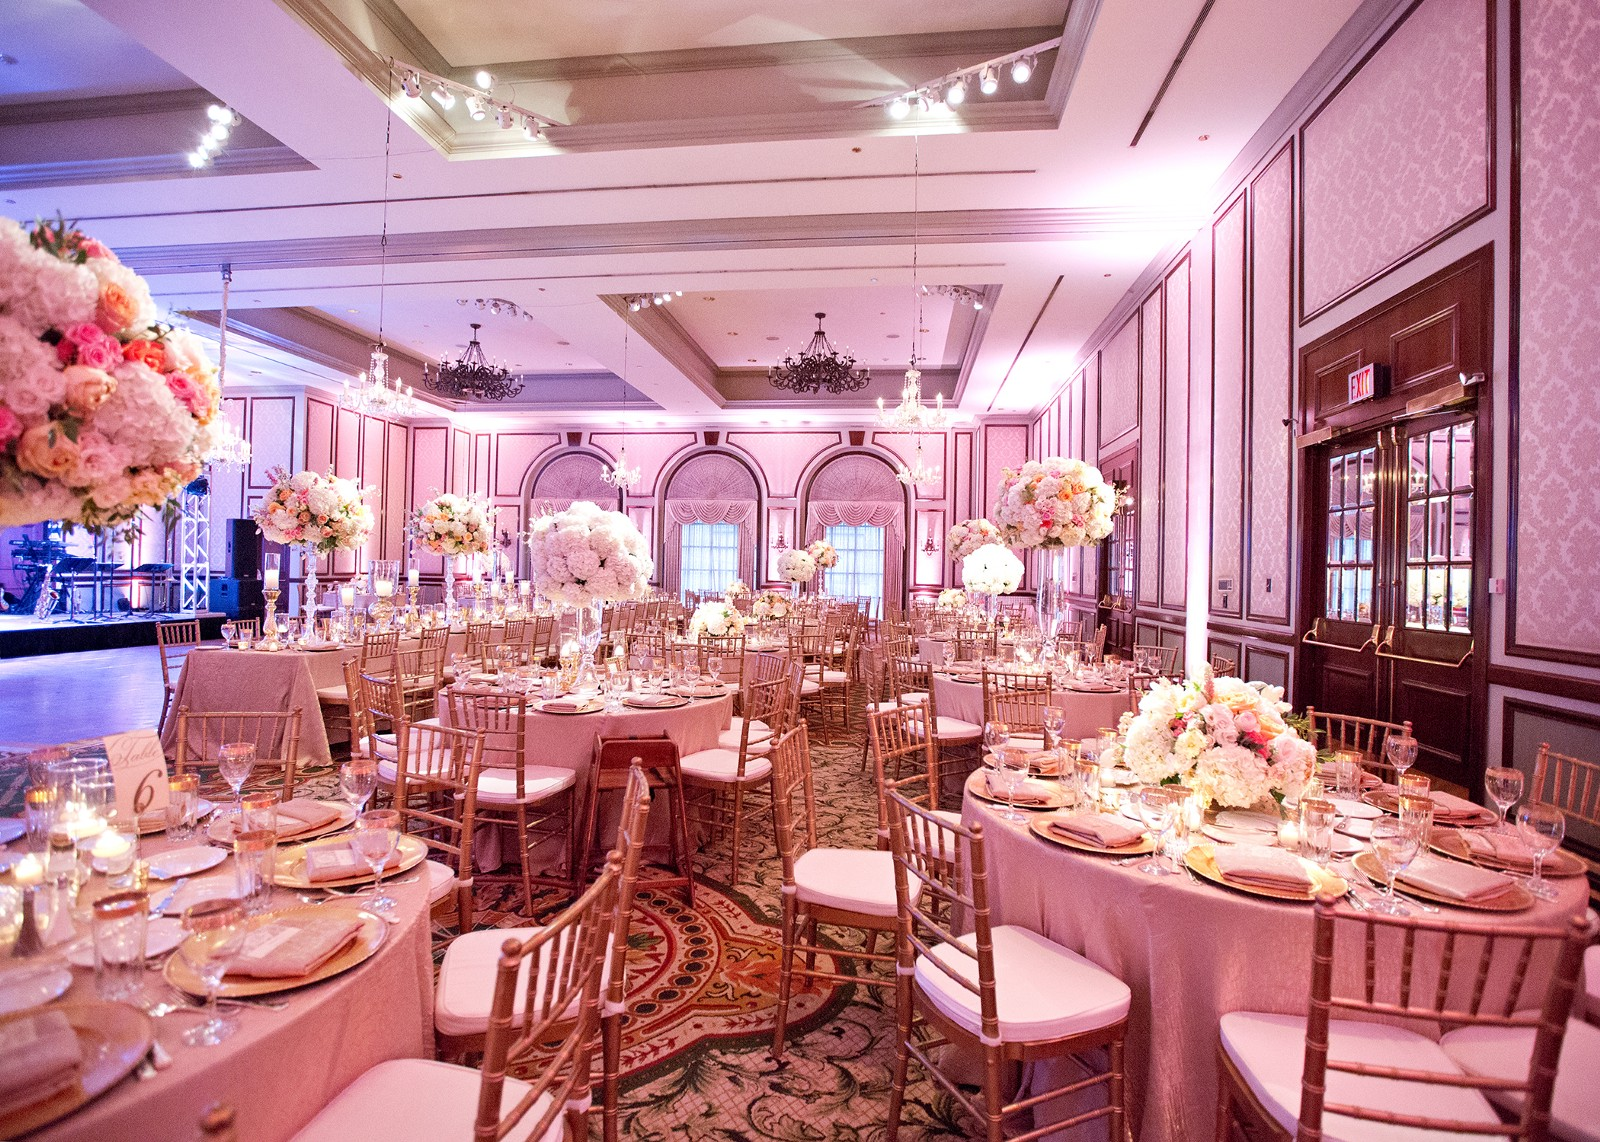 The Most Instagrammable Wedding Venues in the U.S. – Tony Bowles ...